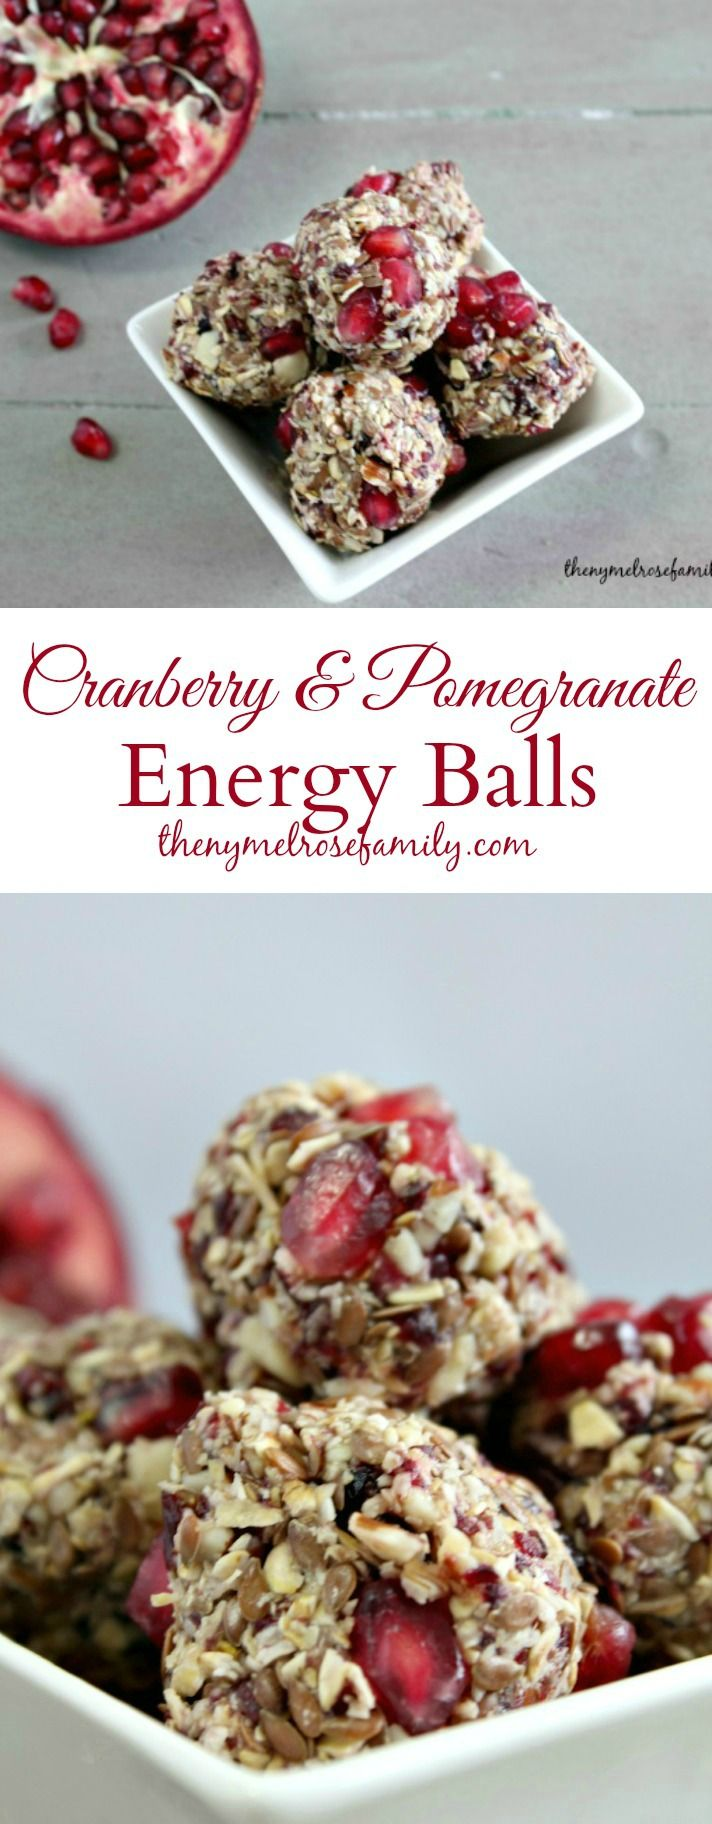 These look like the perfect healthy snack. And anything with cranberries...look out, I will be hooked!